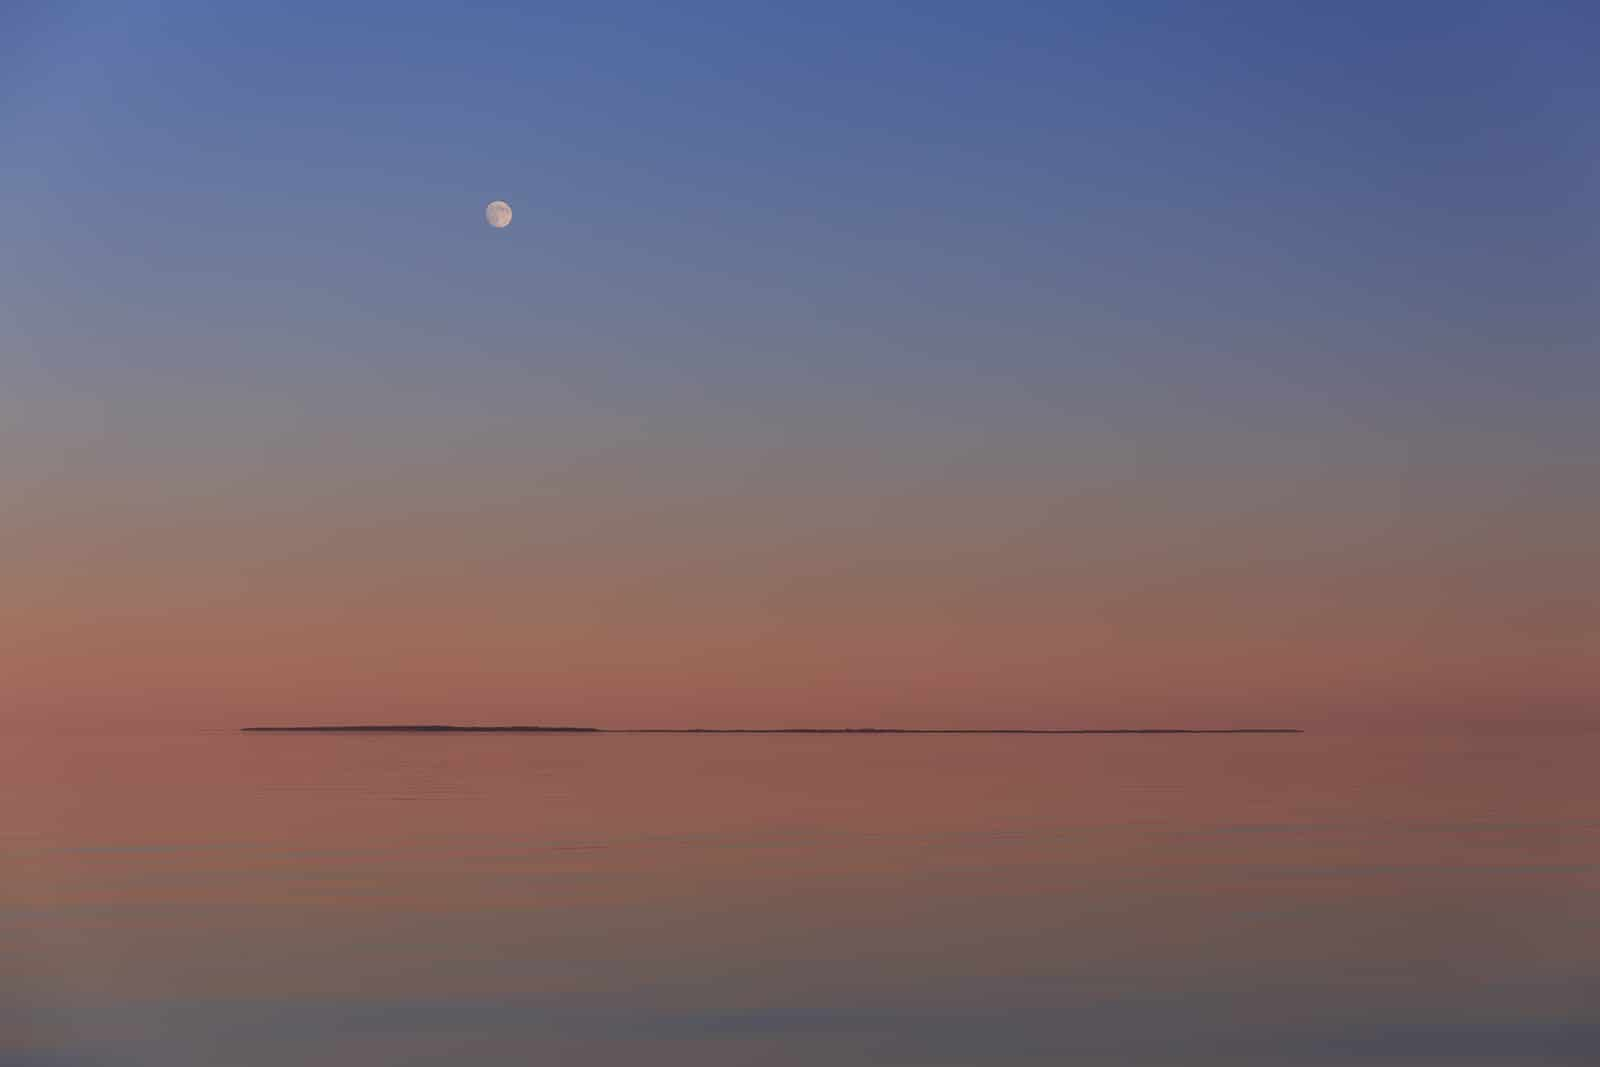 loneliness-space-ladoga-lake.jpg